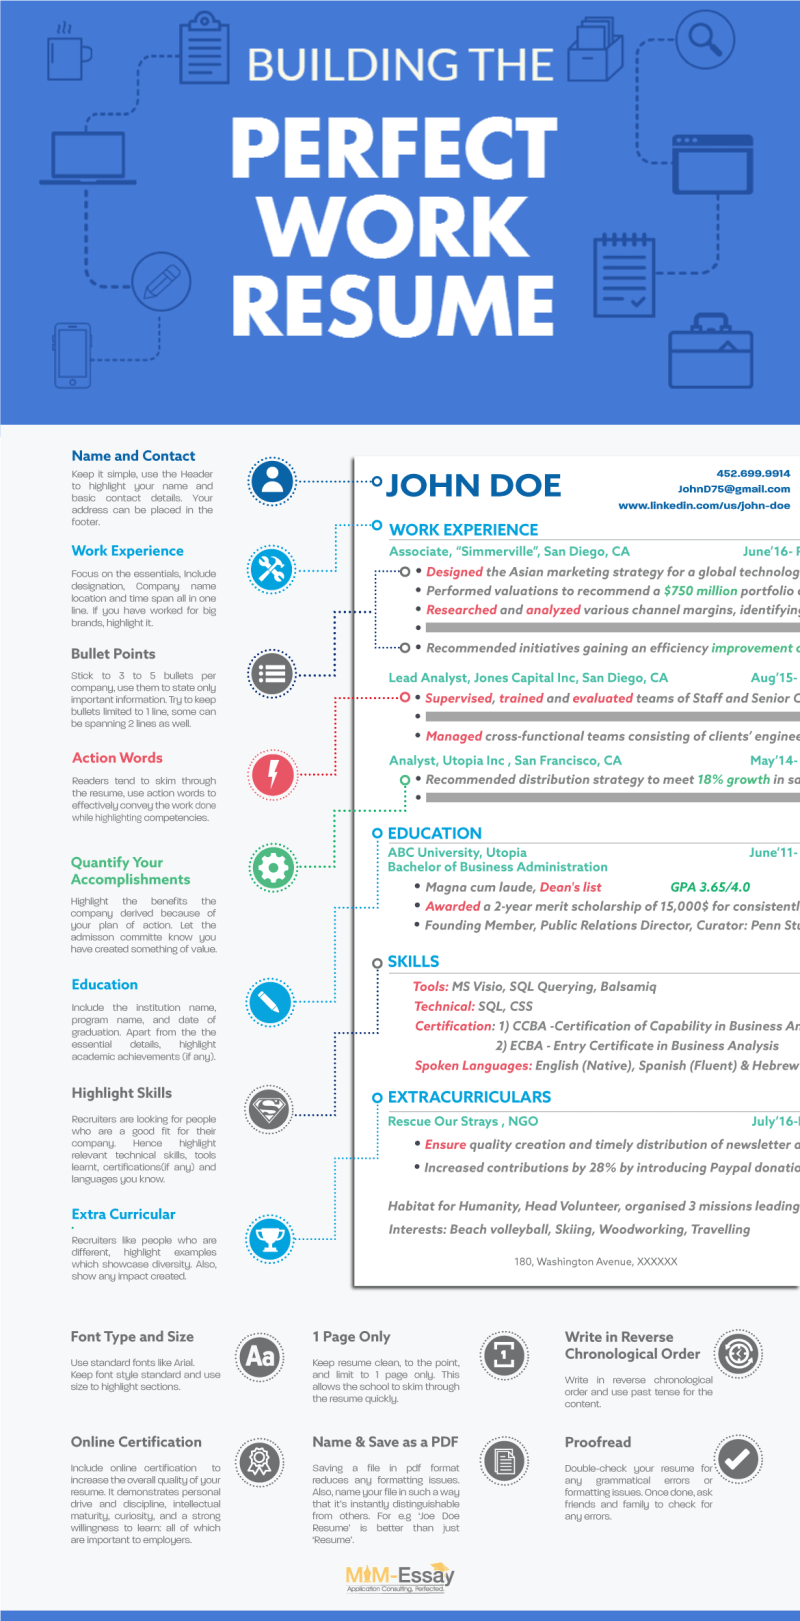 crafted resume